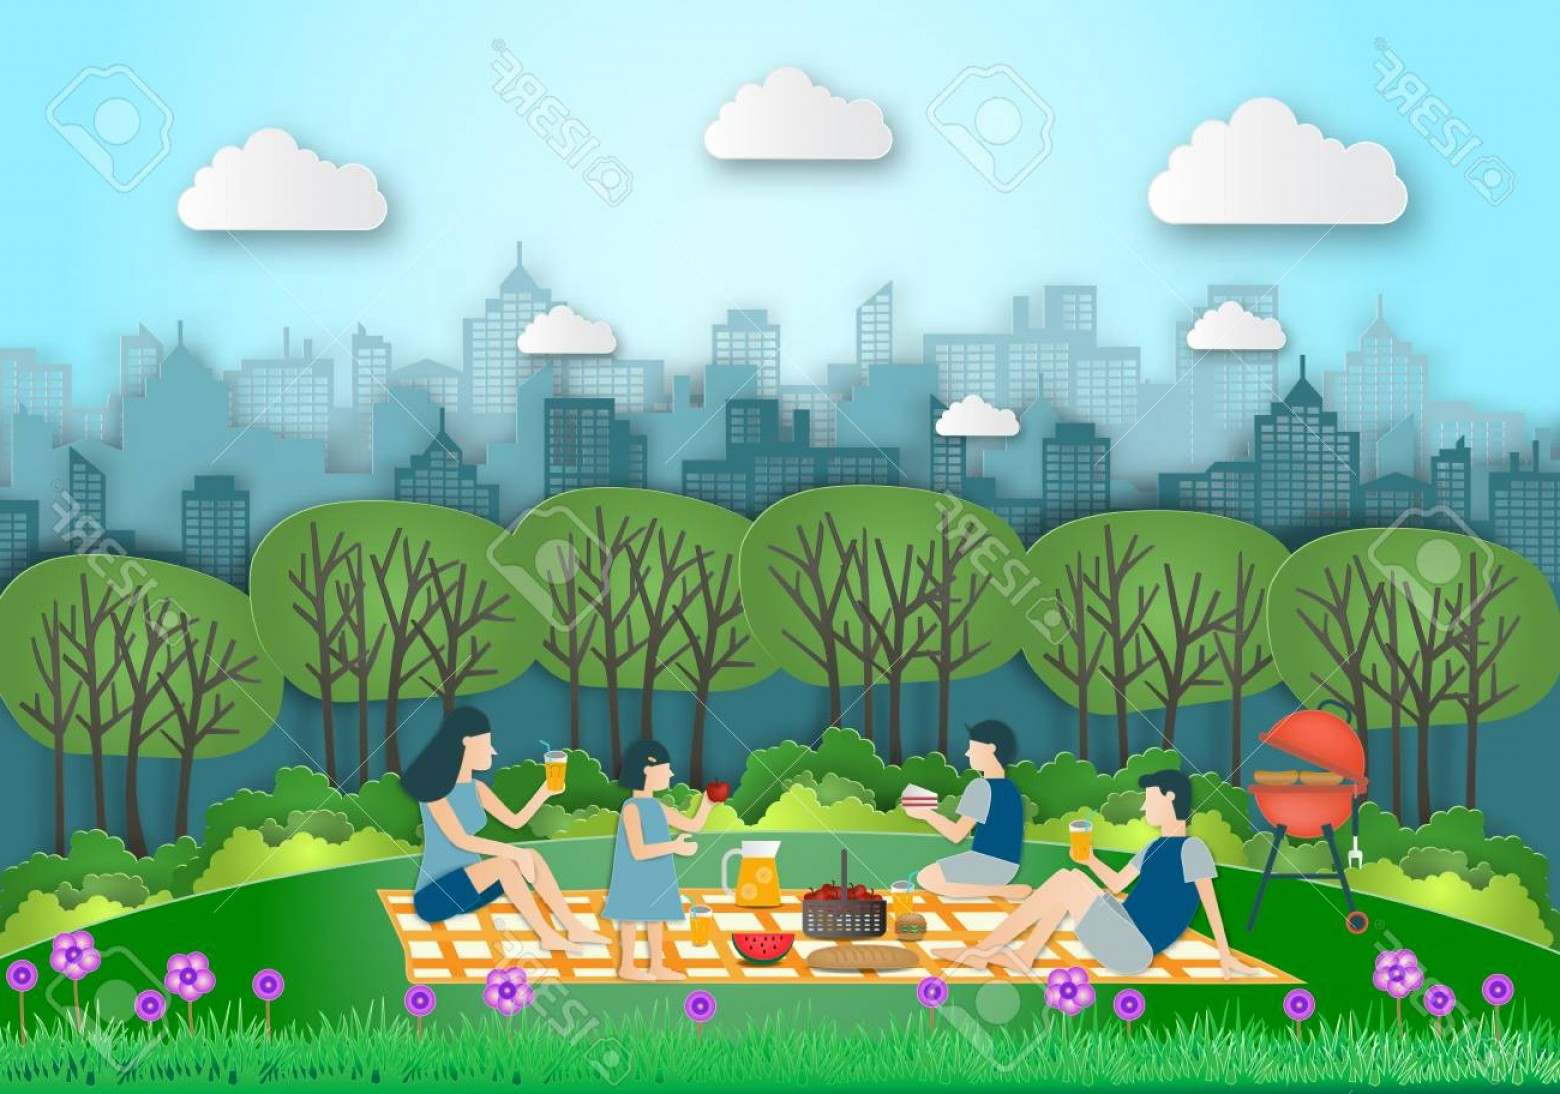 Picnic Vector Scenery: Photostock Vector Family Making Picnic On City Park Outdoor Dad Mom Son And Daughter Are Resting In Nature The Park Wa